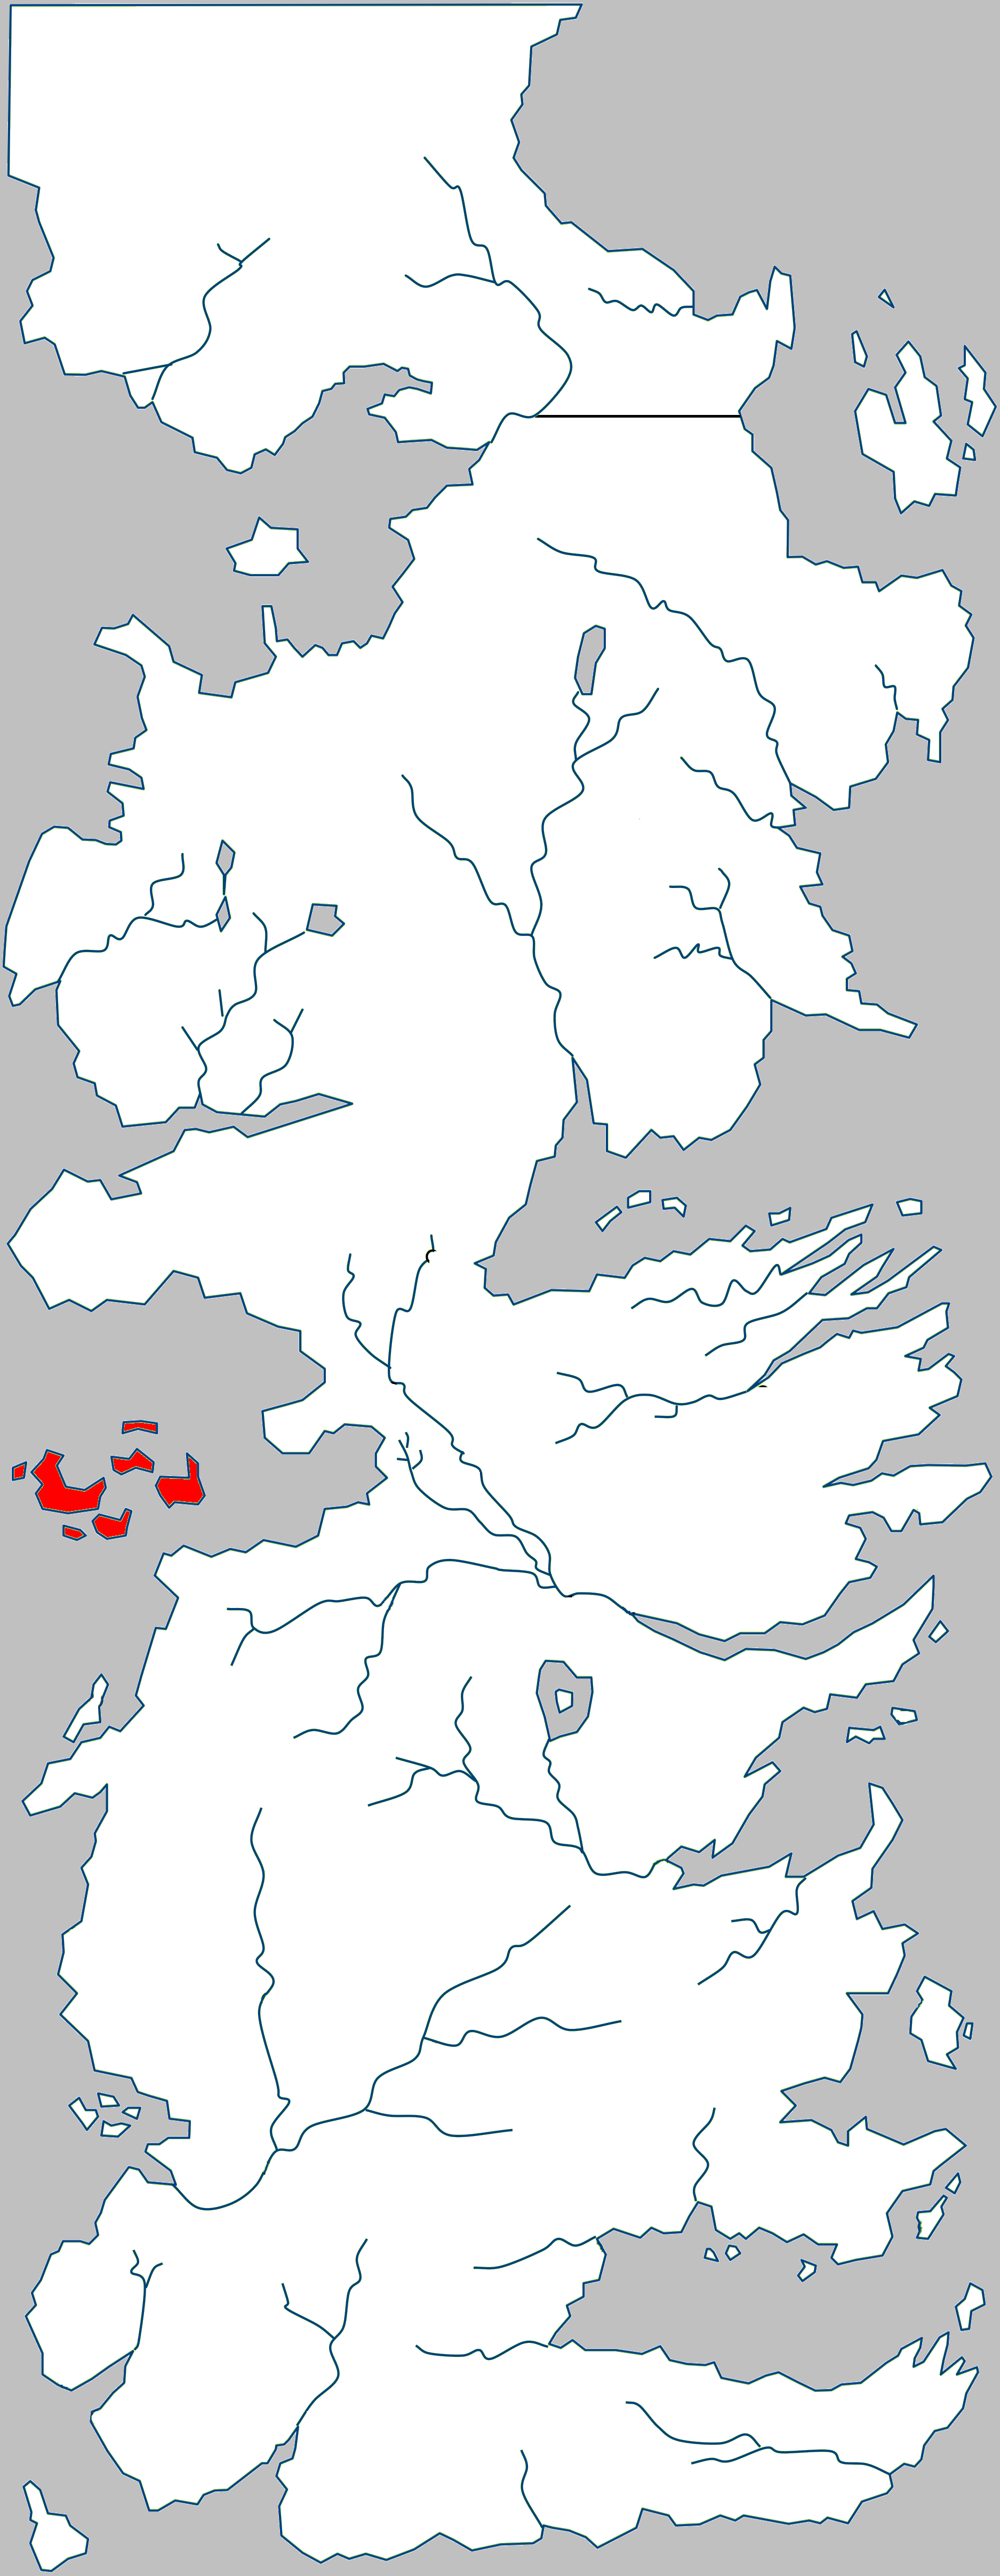 ASOIAF Islands and Seas on a Map slideshow Quiz  By